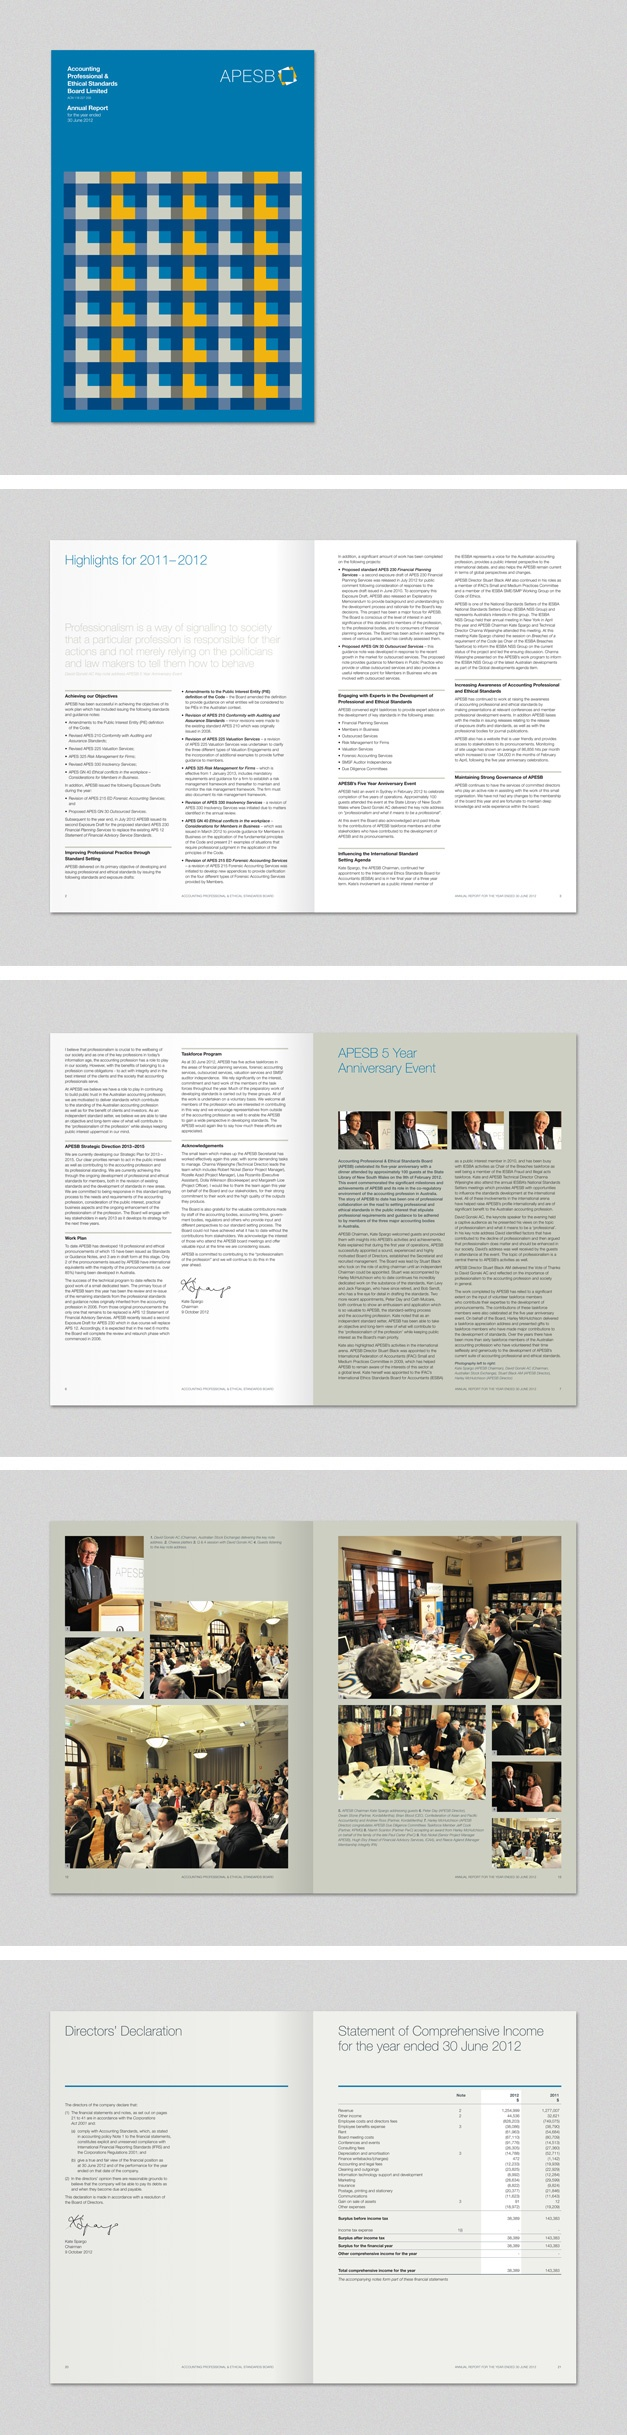 APESB Annual Report. www.fenton.com.au #communication #PR #branding #graphicdesign #annualreport